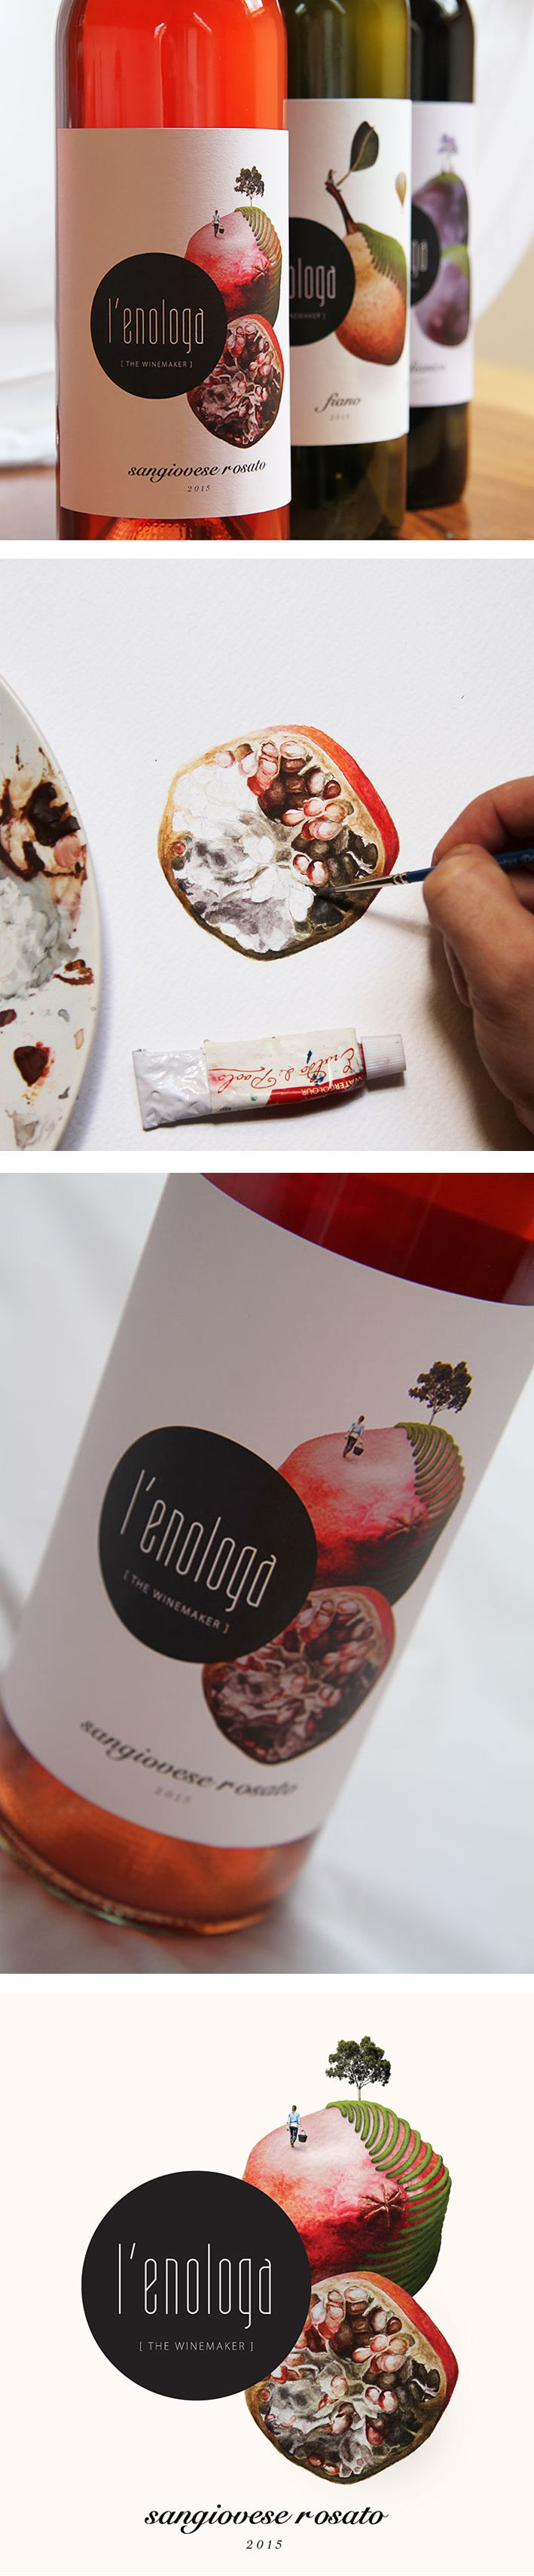 Colourful Wine Label Collection. Client: L'enologa, Mildura, VIC Australia. The artworks are hand painted water colours with some mixed media details. The labels depict the journey of L'enologa, Italian for 'the winemaker' swept away in her own creation w